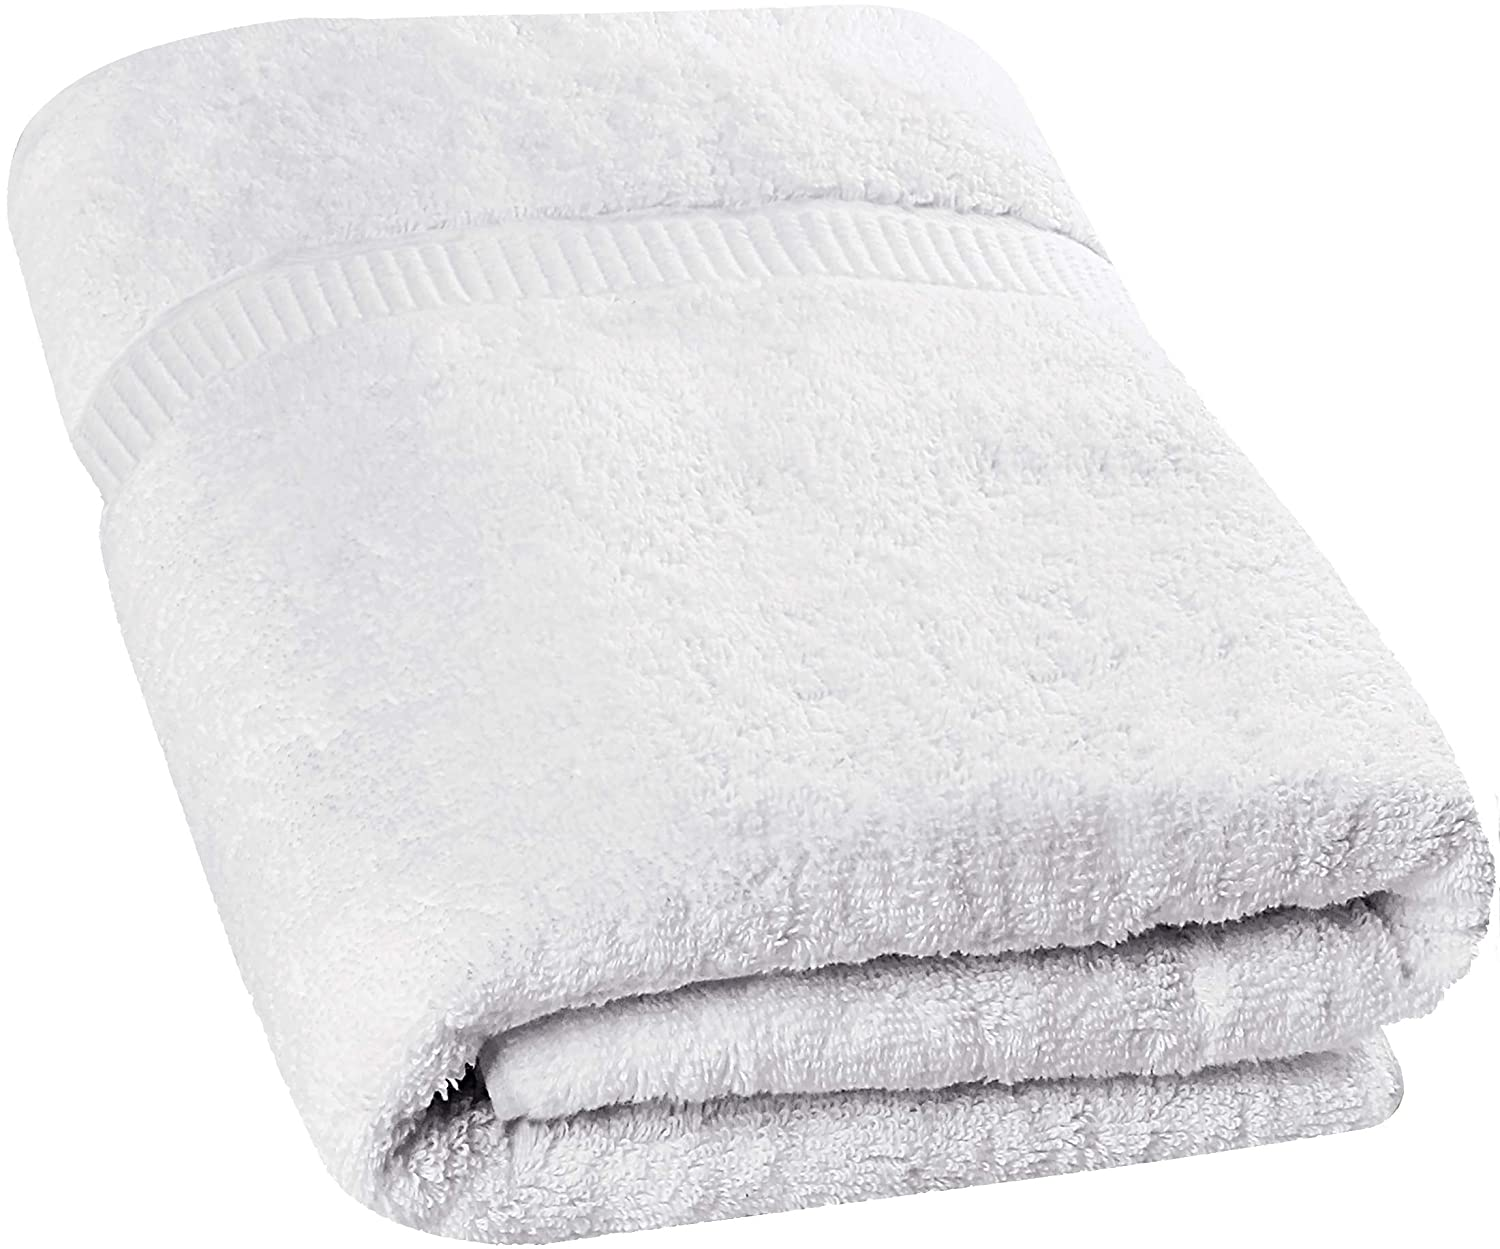 Utopia Extra Large Bath Towels